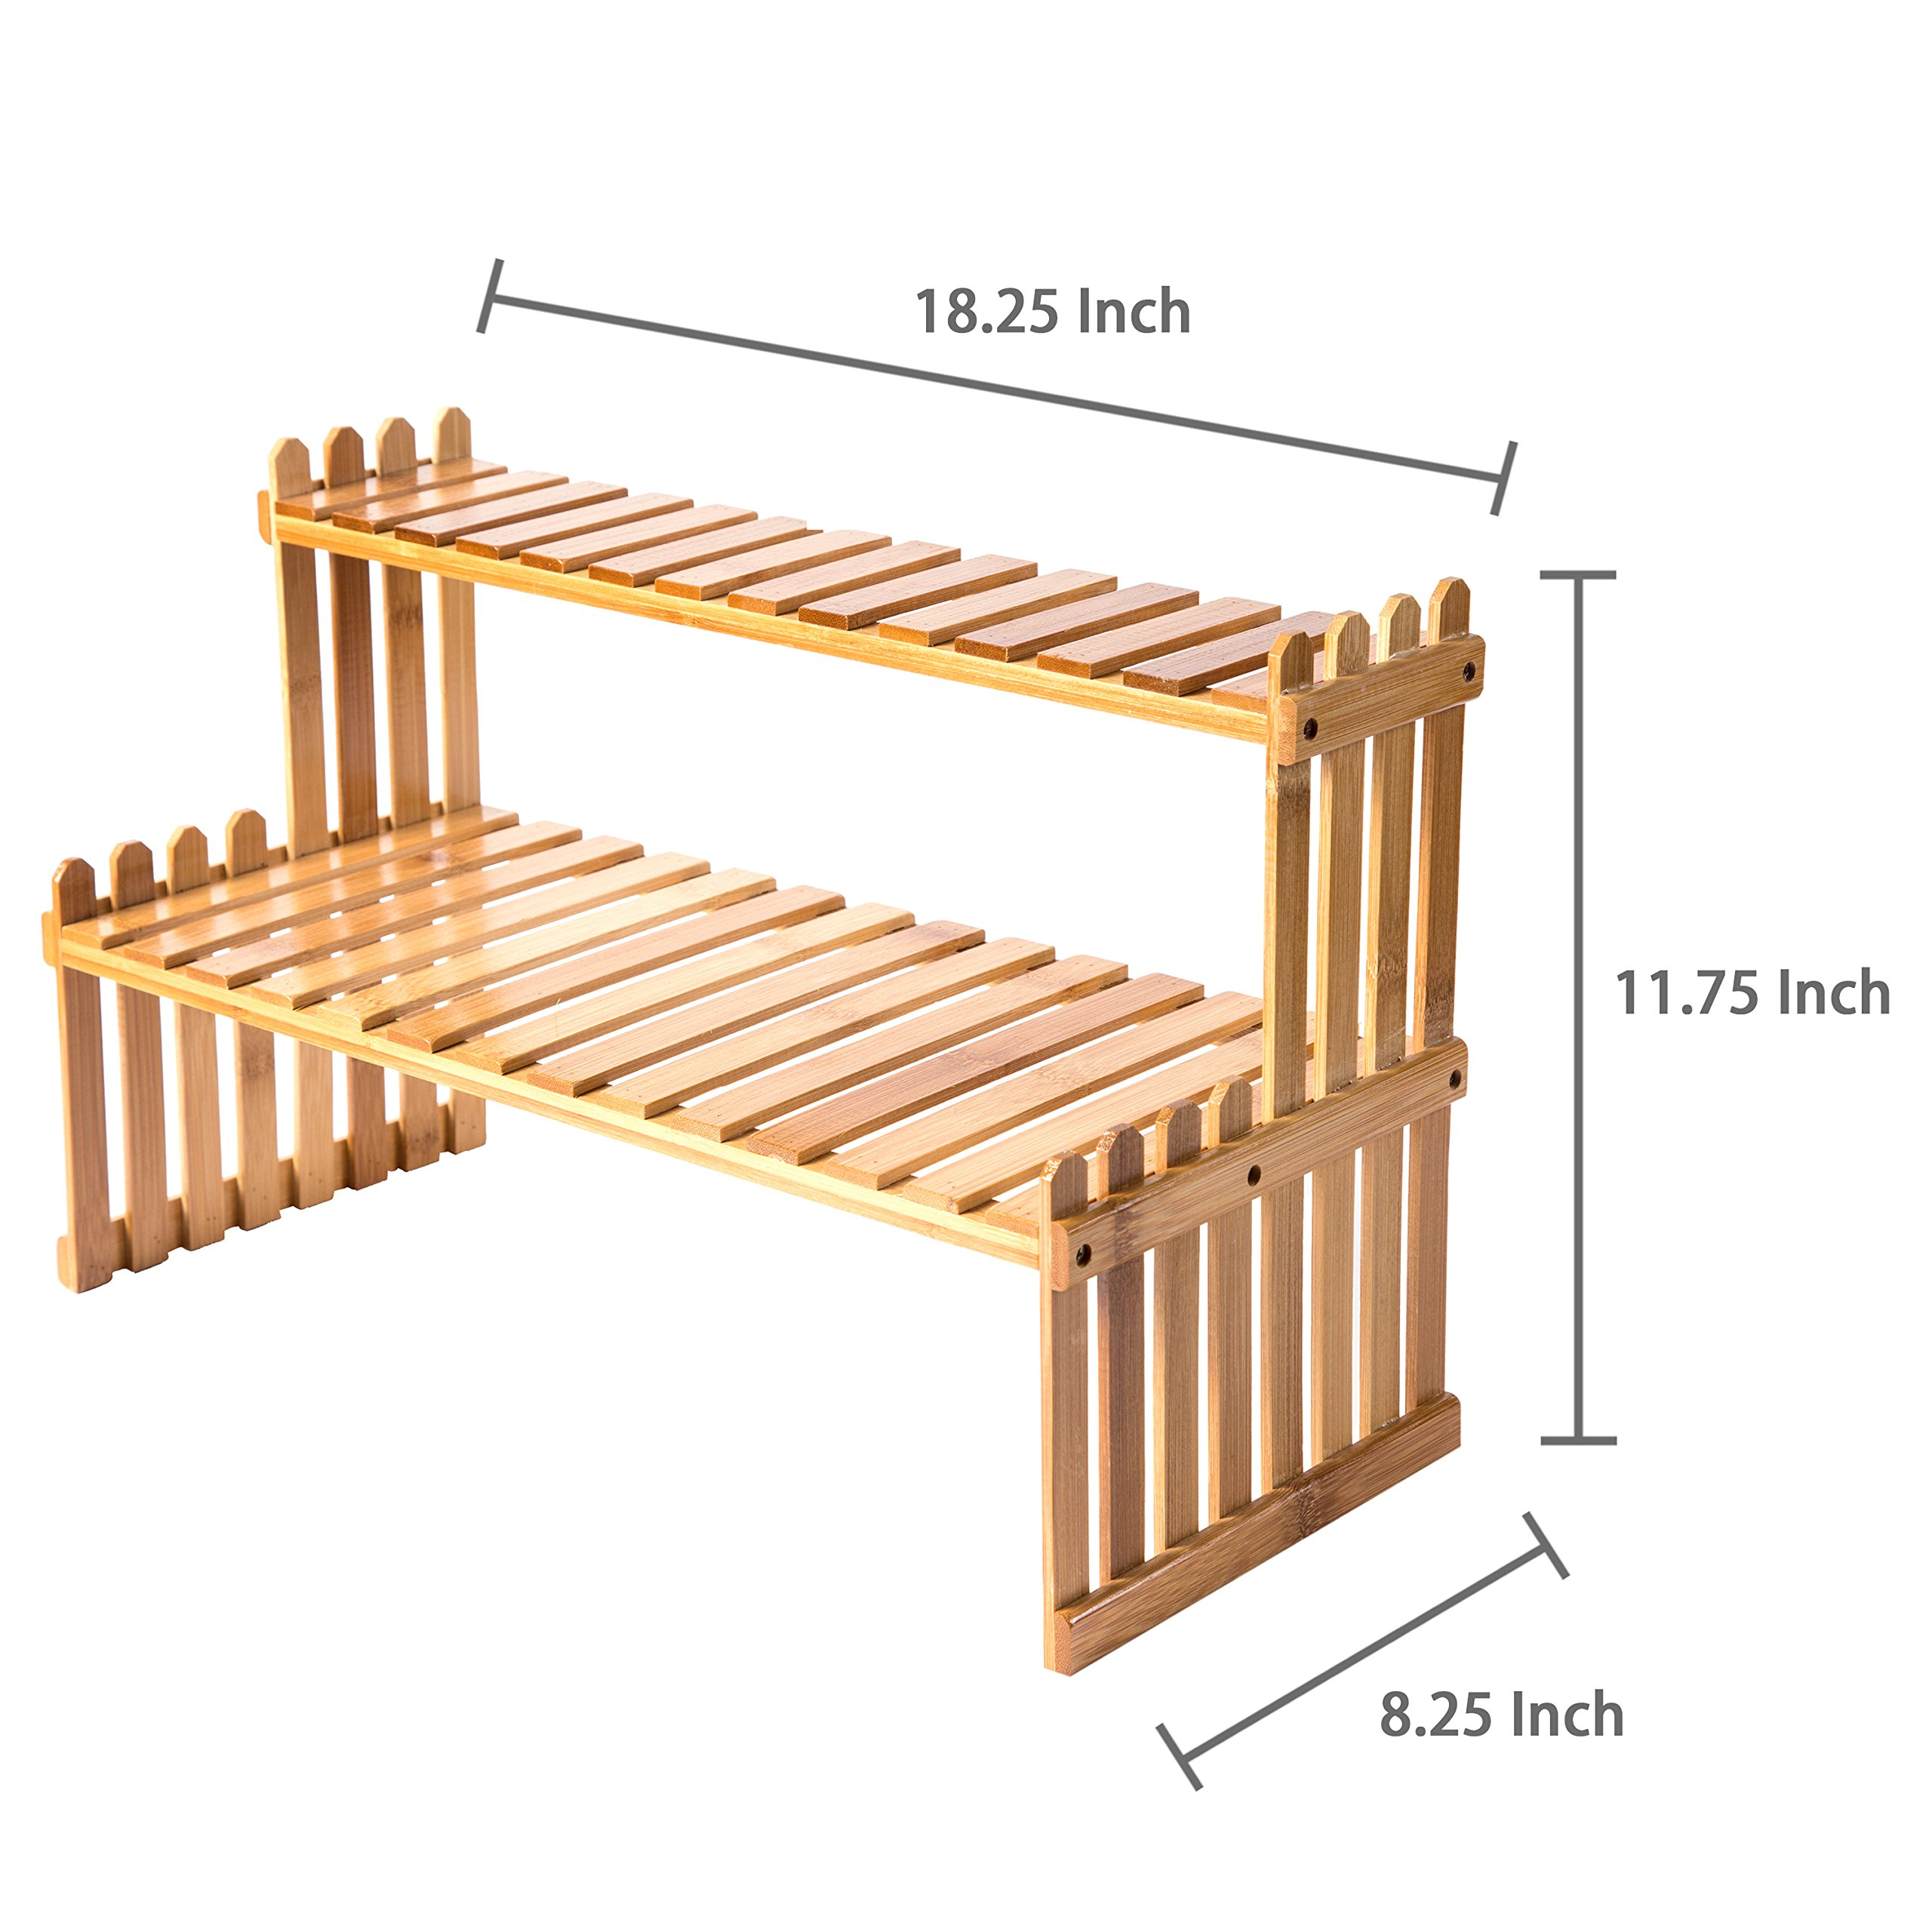 MyGift Tabletop Natural Bamboo Plant Stand, 2 Tier Desktop Shelf Rack, Brown by MyGift (Image #7)